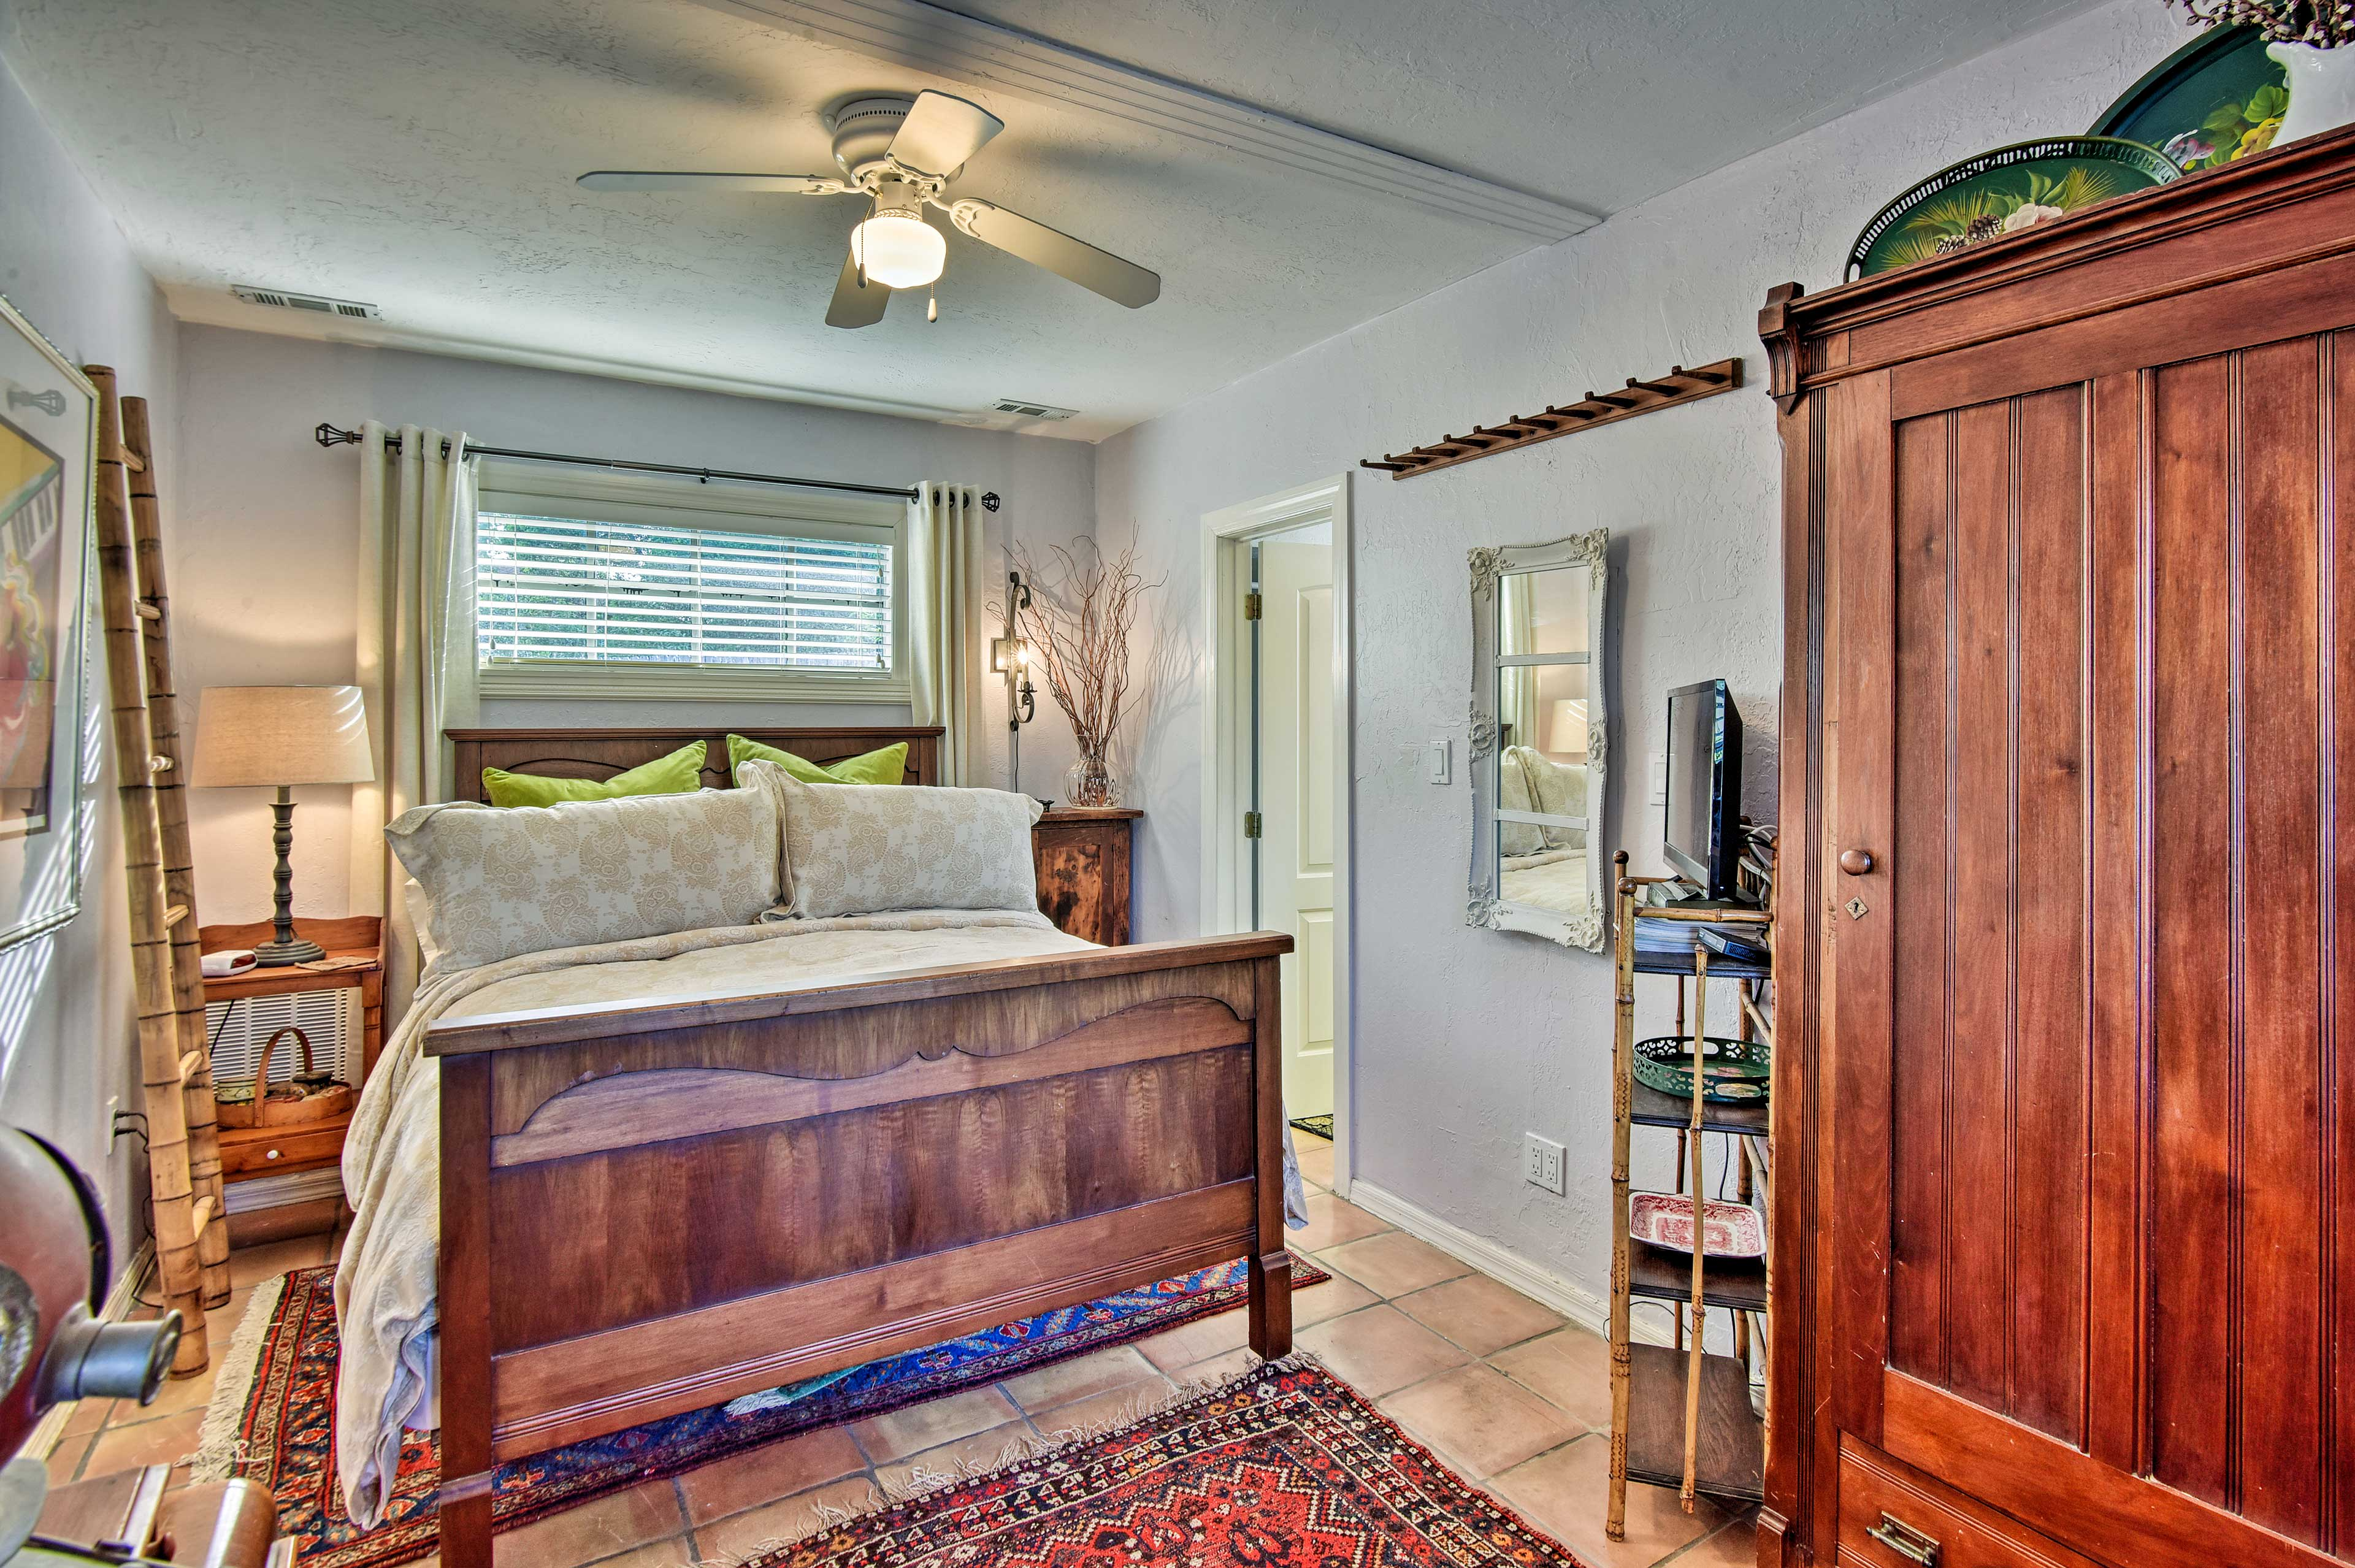 The home has 1 bedroom featuring a queen-sized bed.